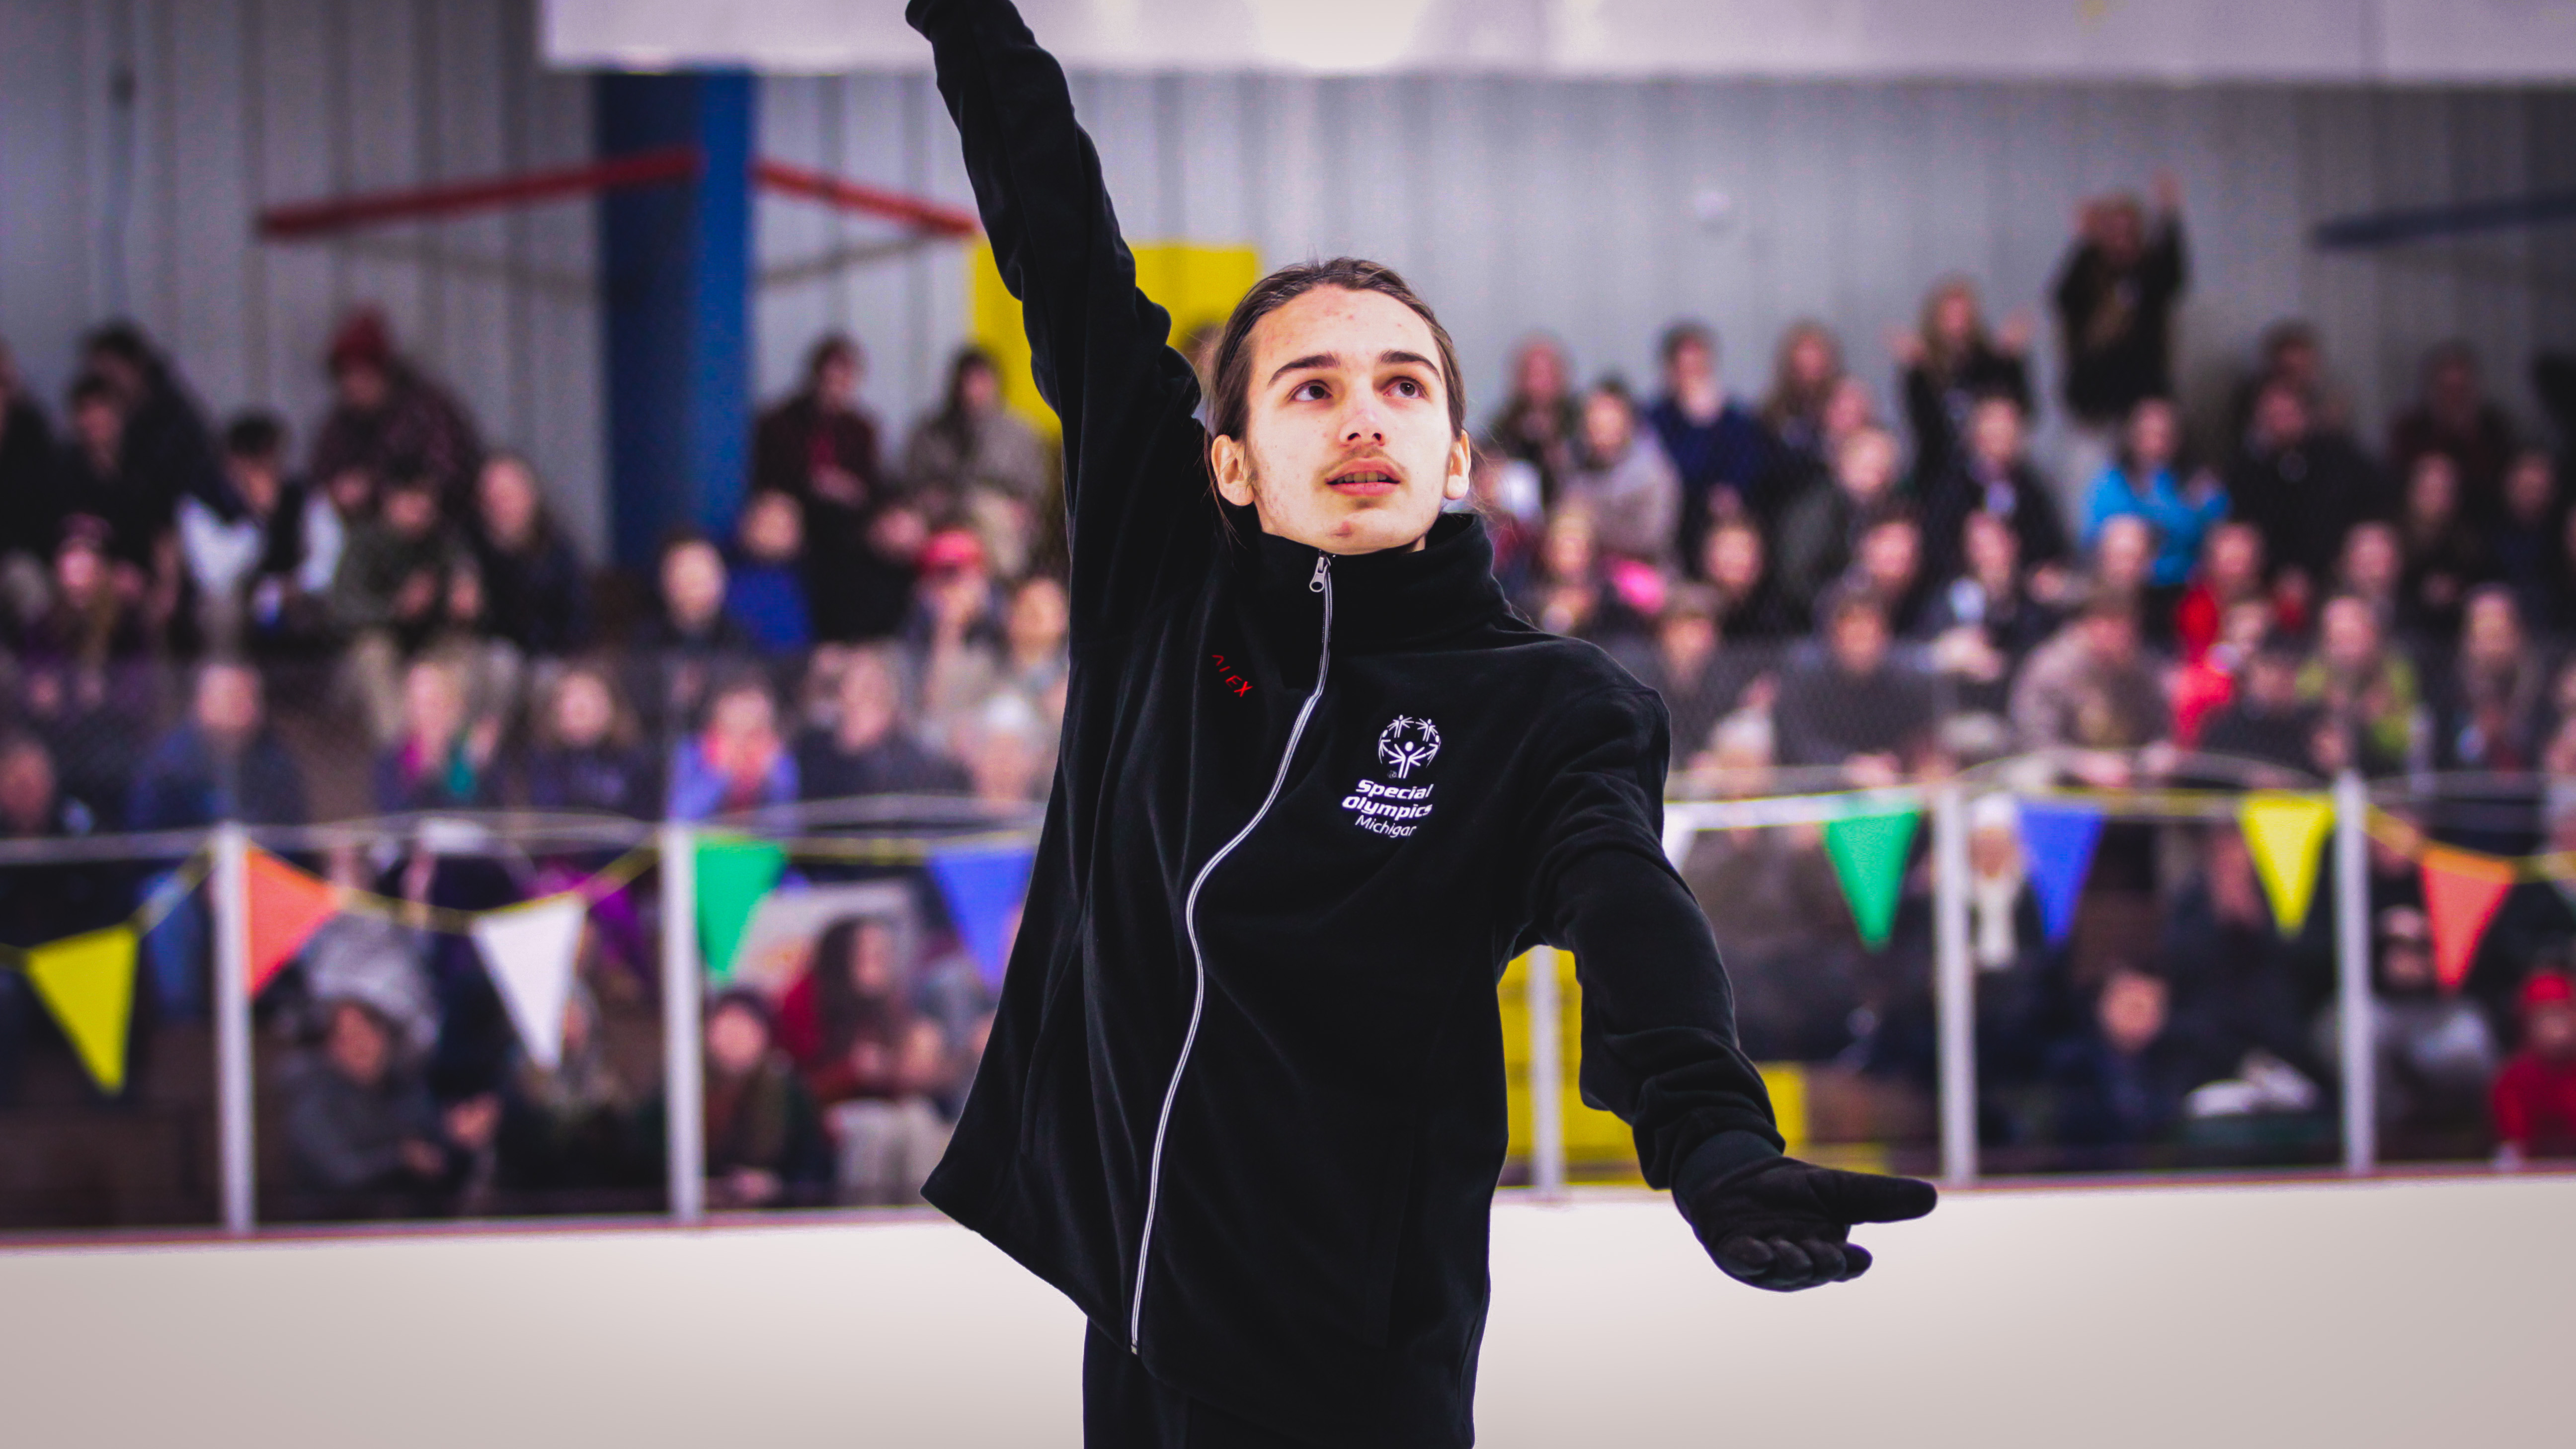 athlete finishing their routine on the ice